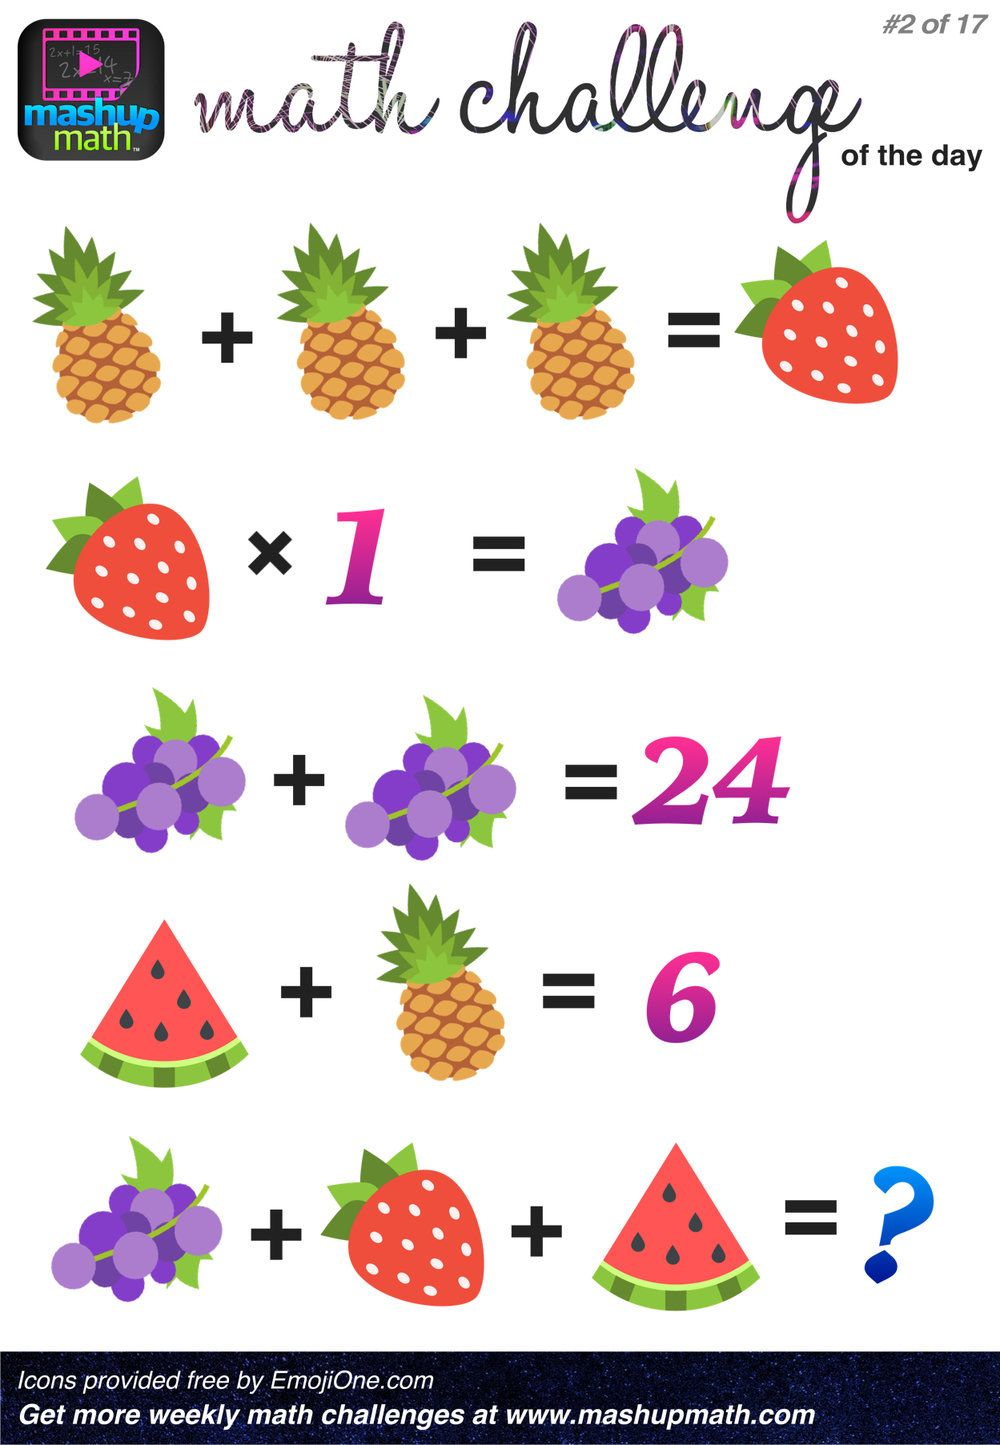 Are You Ready for 17 Awesome New Math Challenges? Math